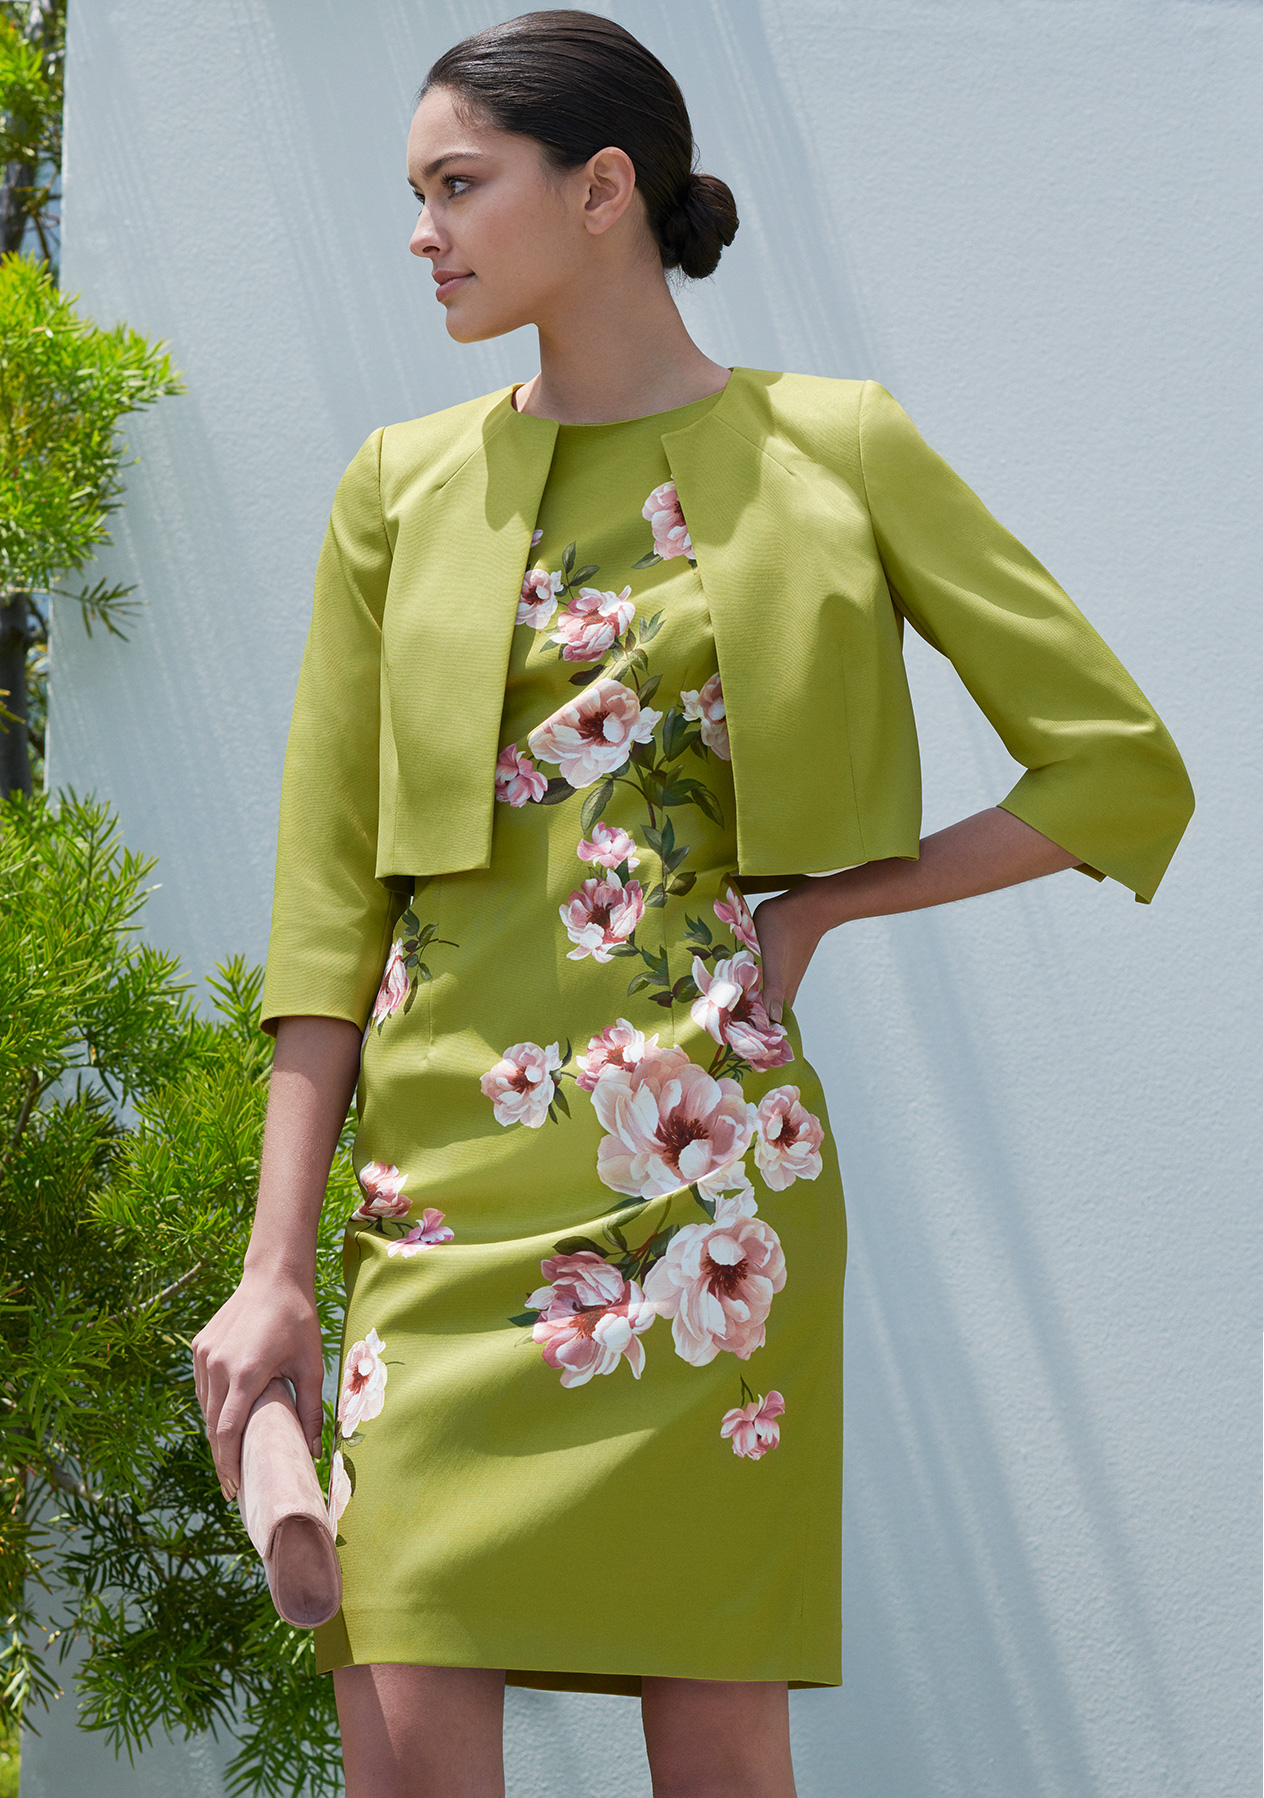 Floral print occasion dress in green with a matching jacket by Hobbs for weddings and all occasions, ideal for a mother of the bride outfit.